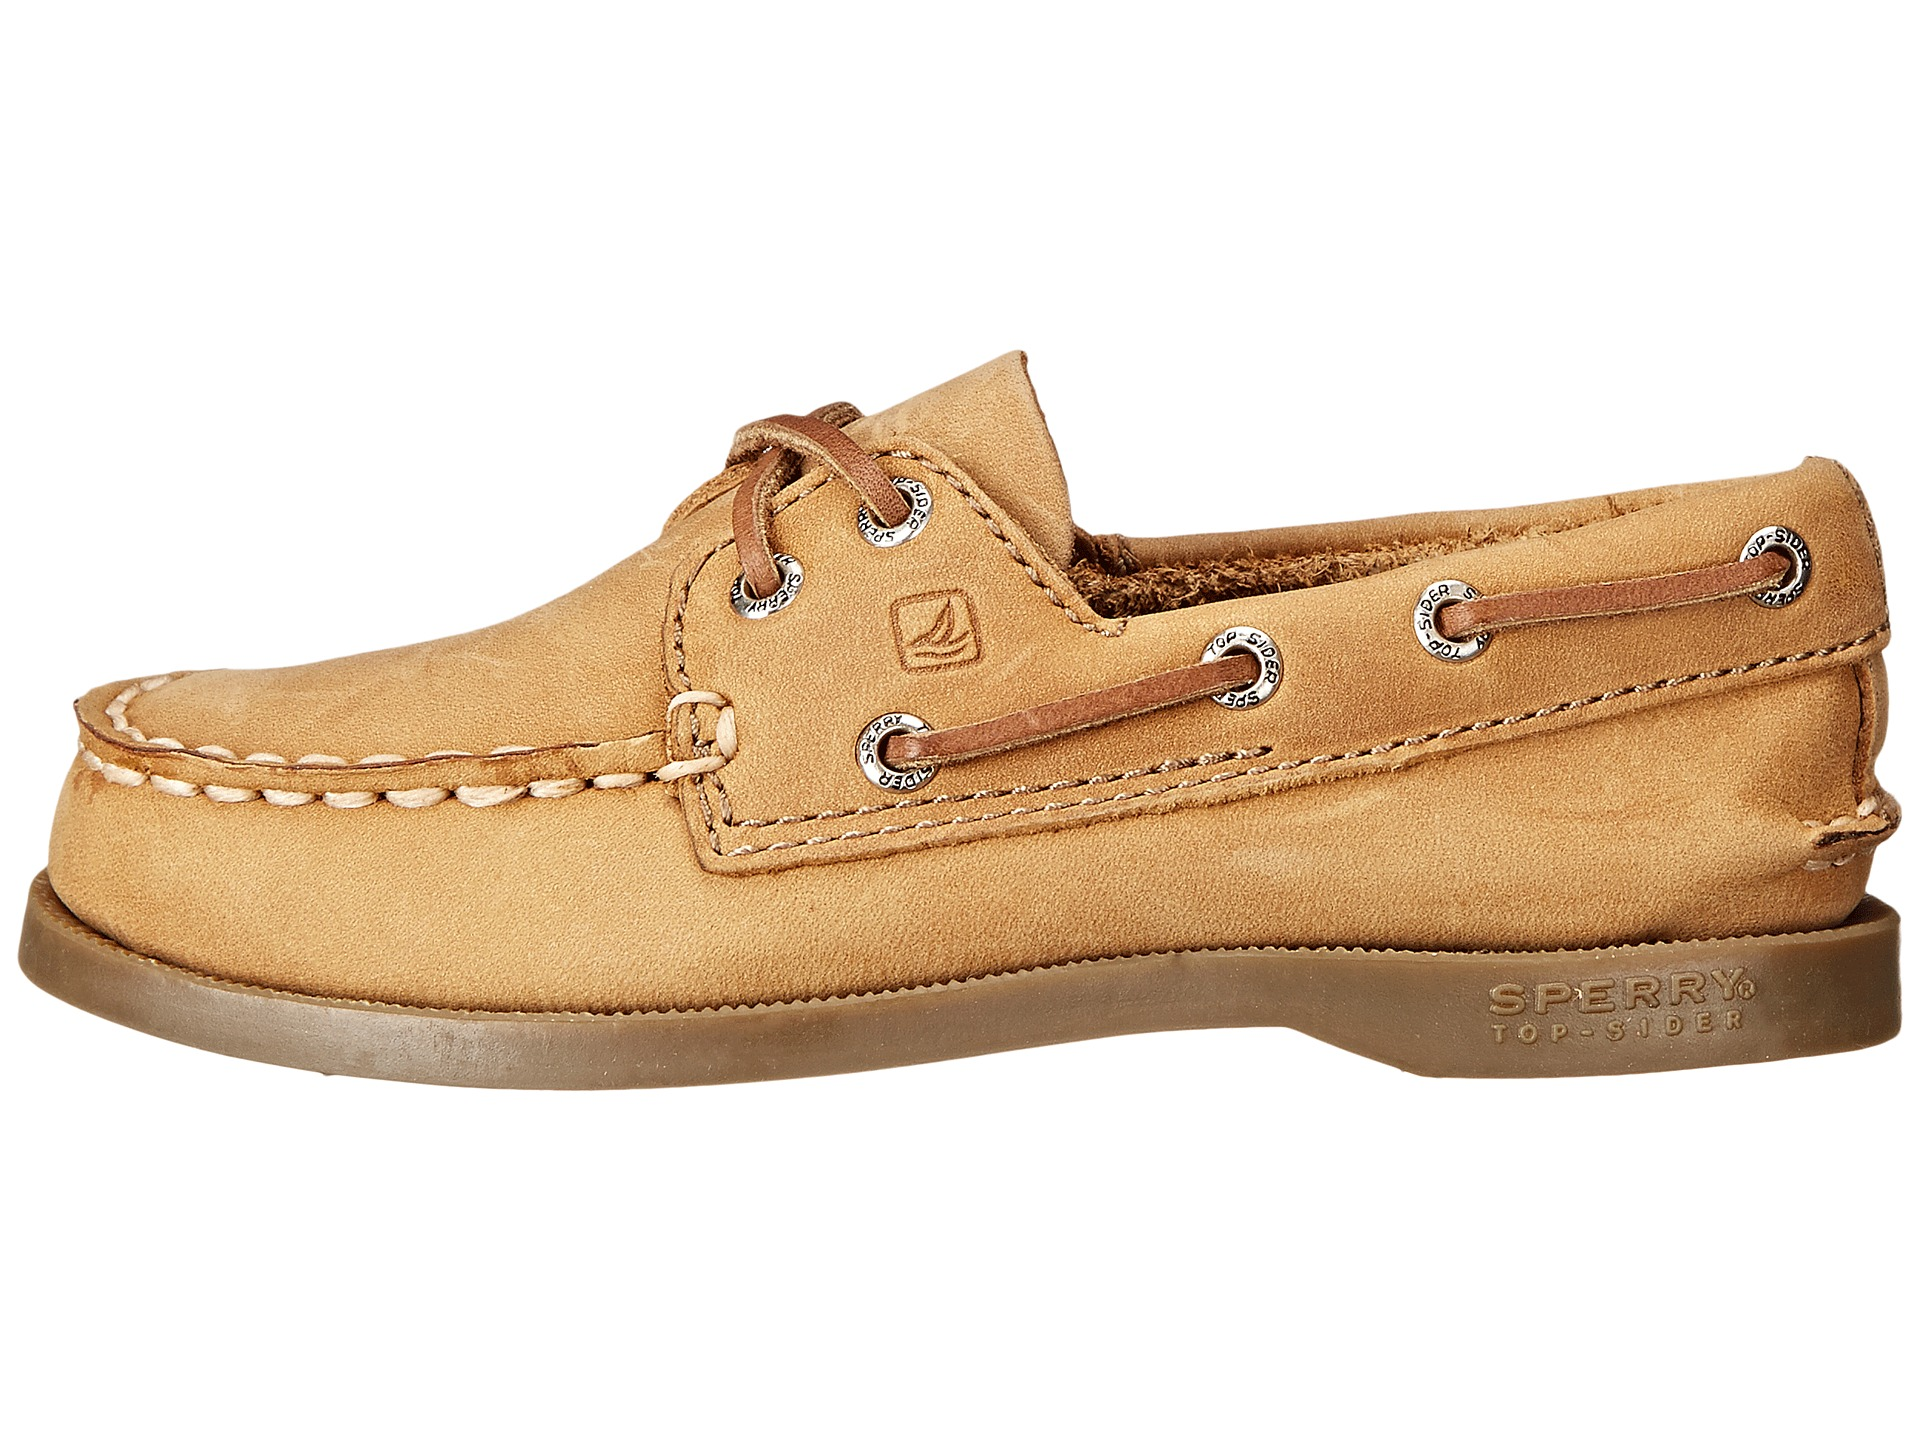 Use Coupon Code for Sperry and Get Extra 25% Off Sperry Sale Styles